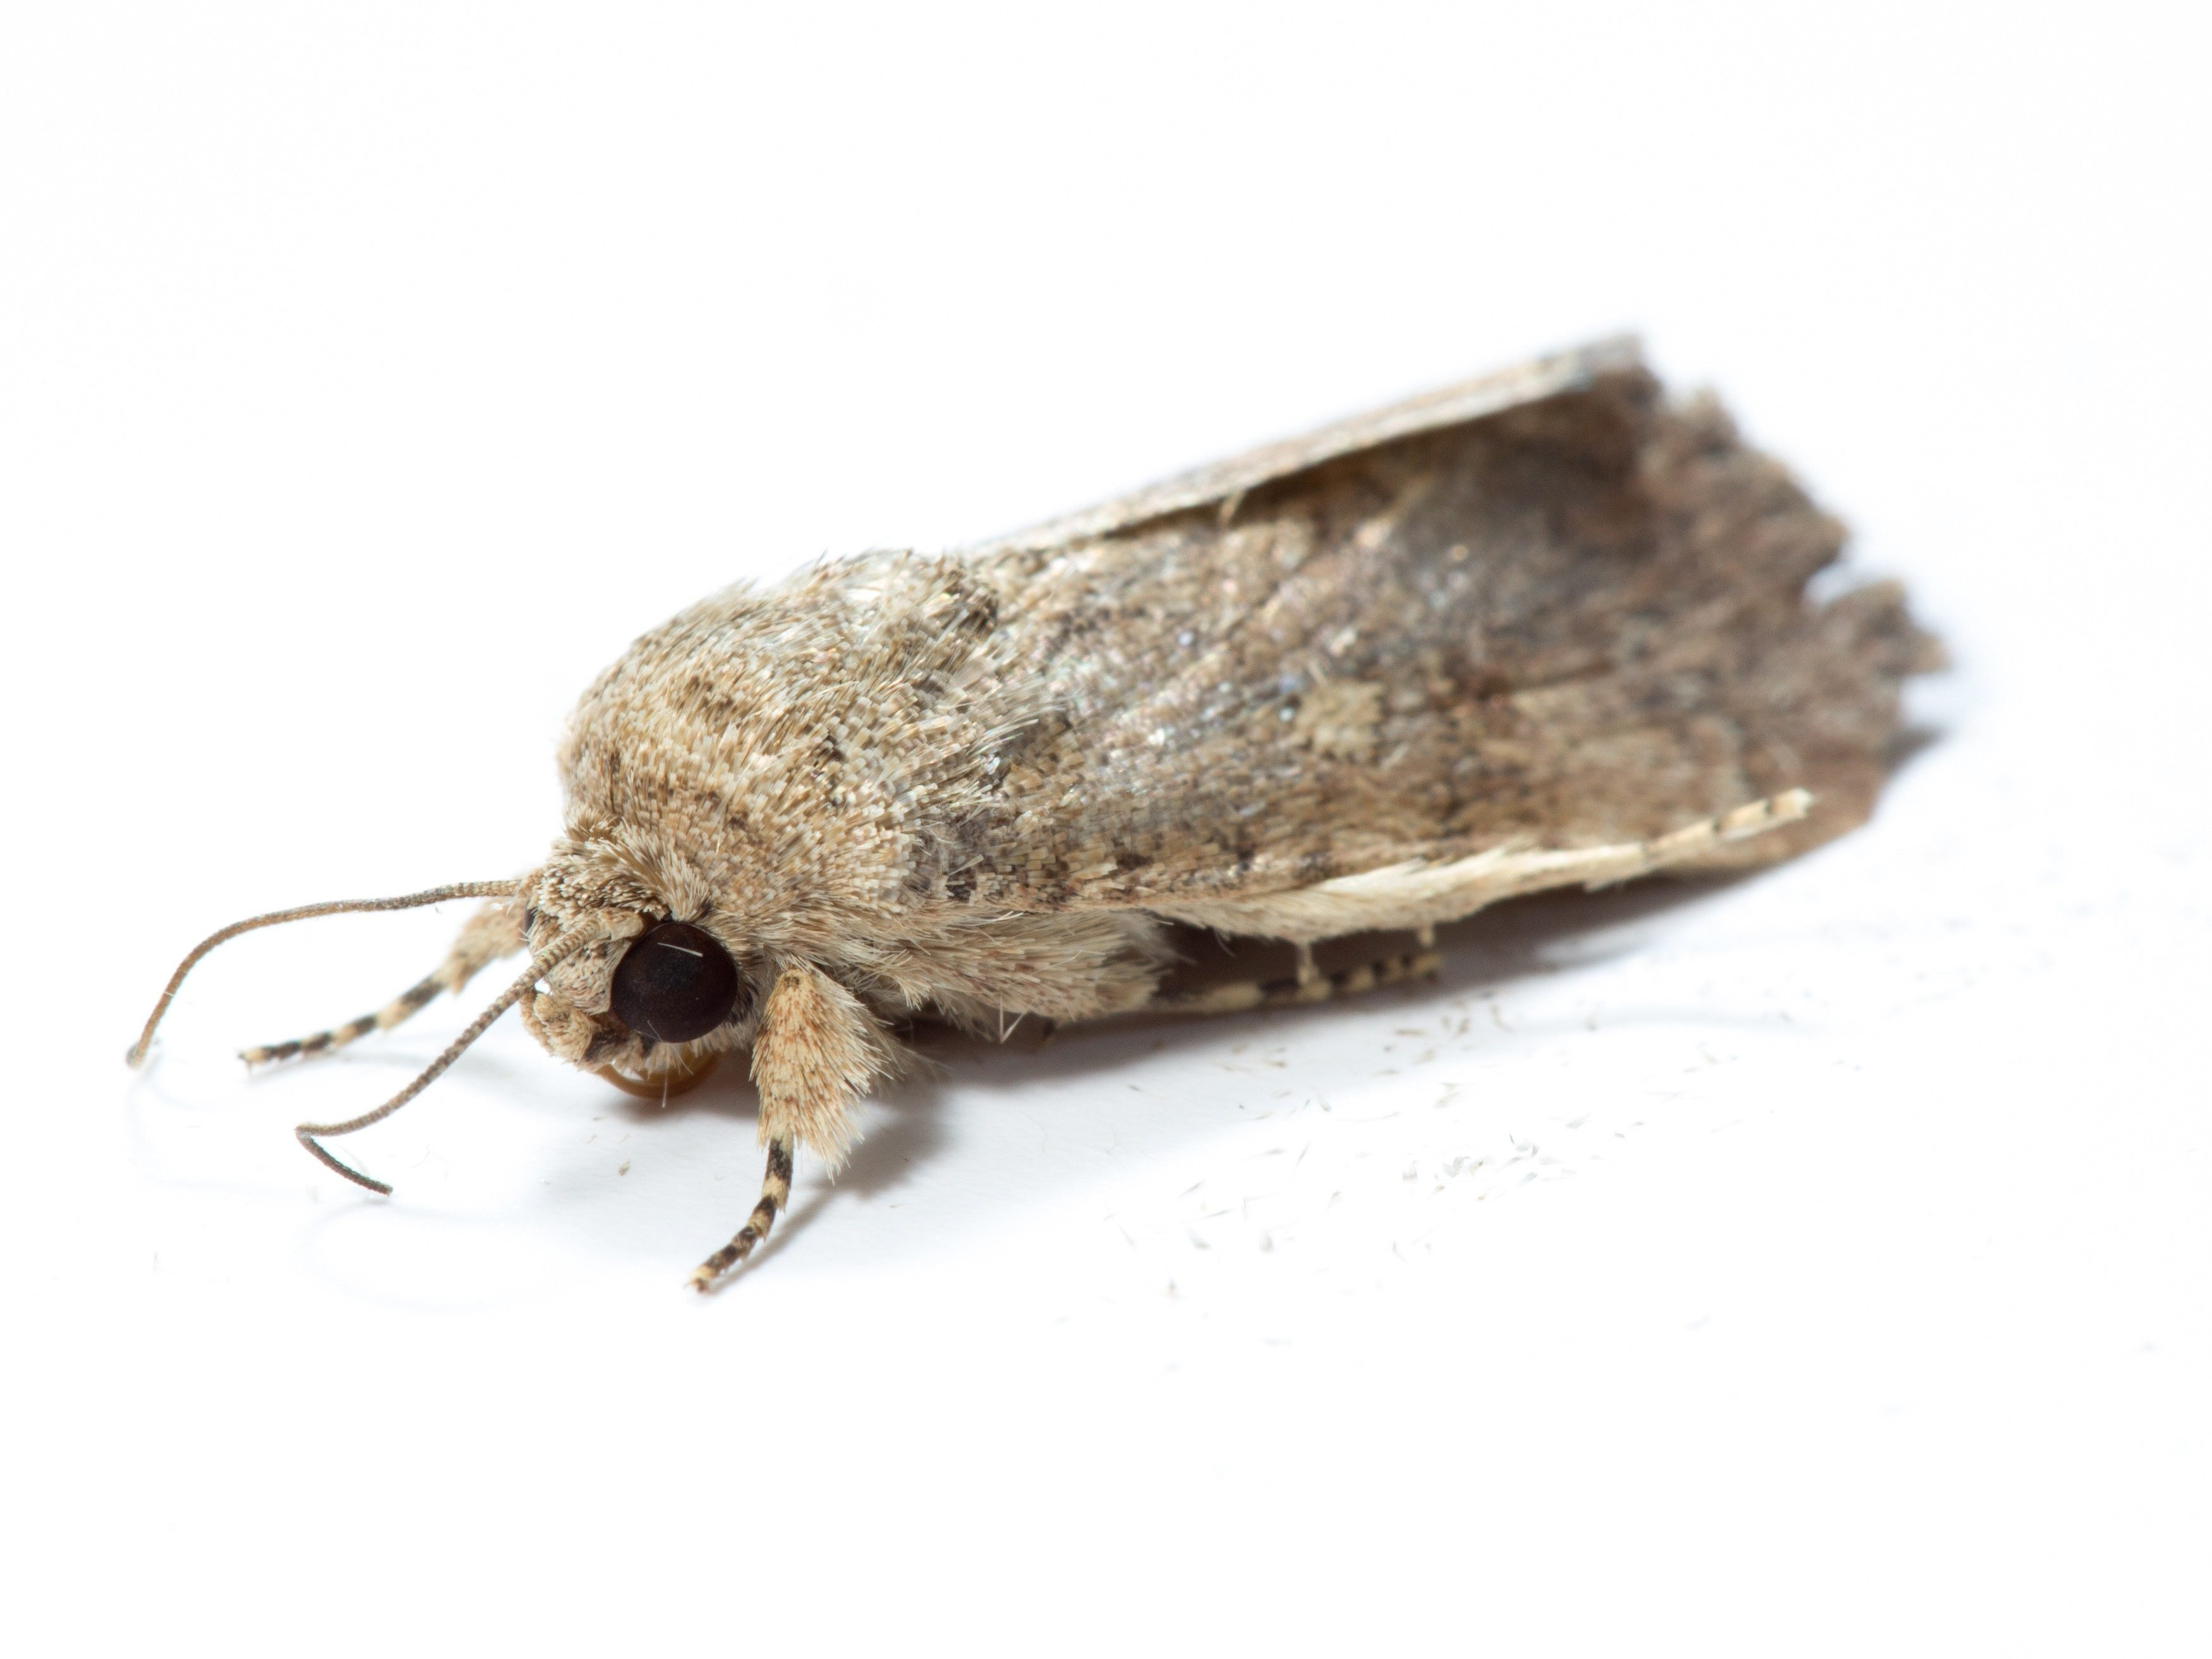 4. Use Ammonia to Repel Moths